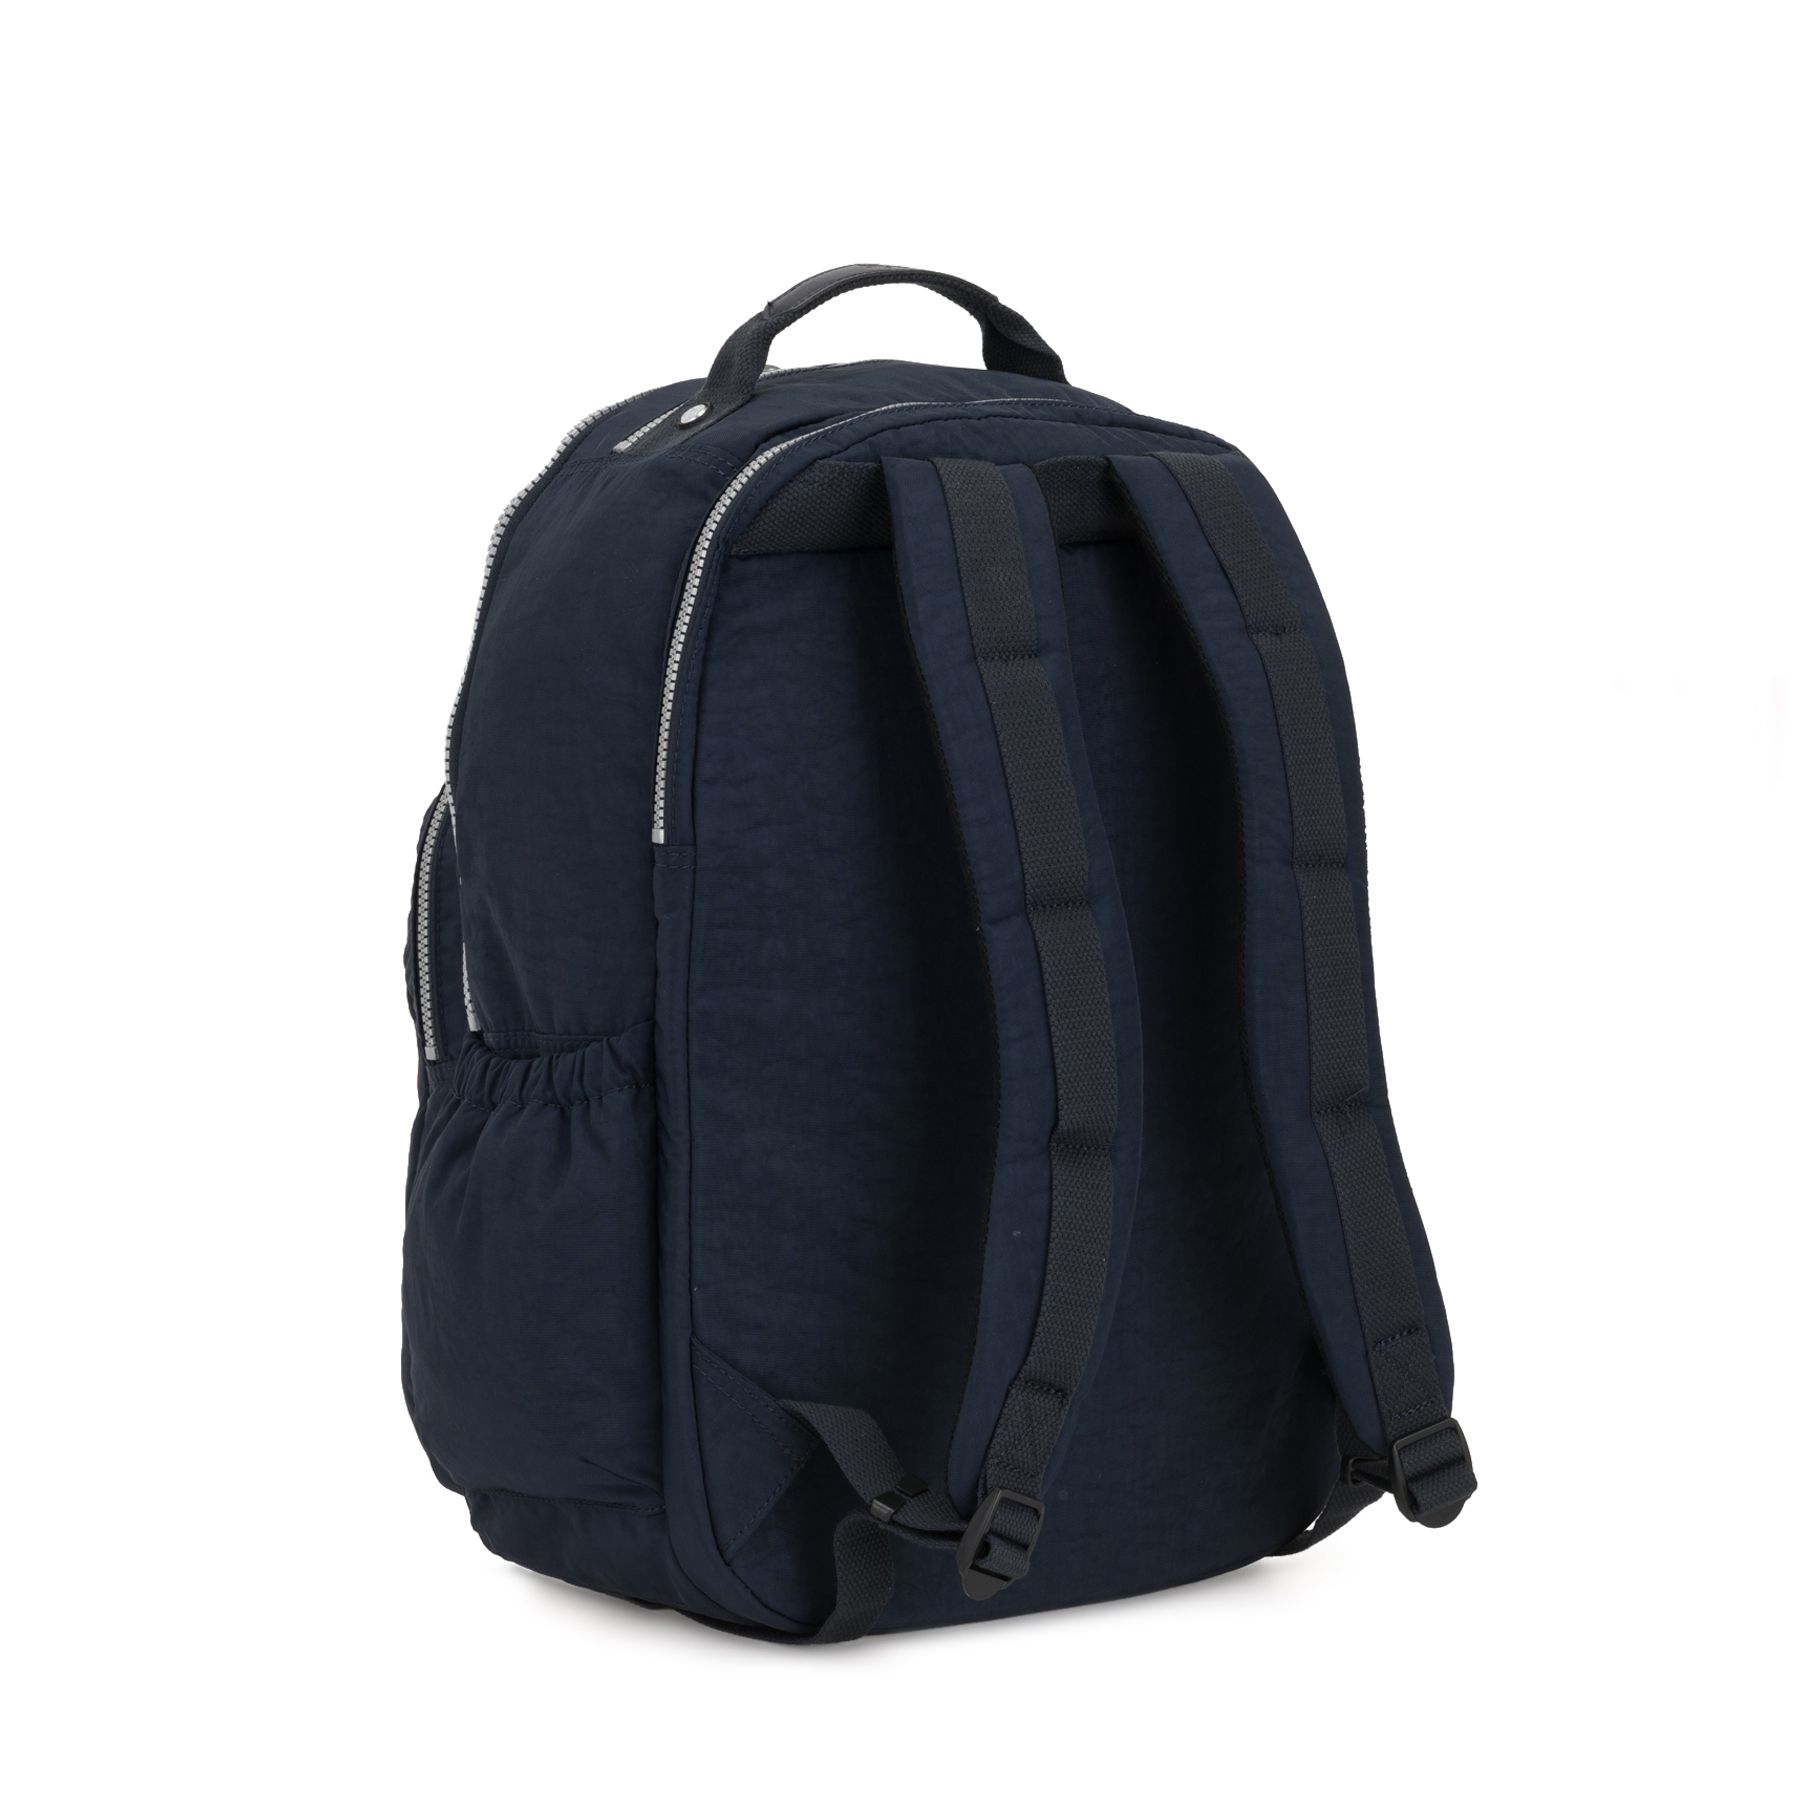 SEOUL GO XL SCHOOL BAGS by Kipling - Back view